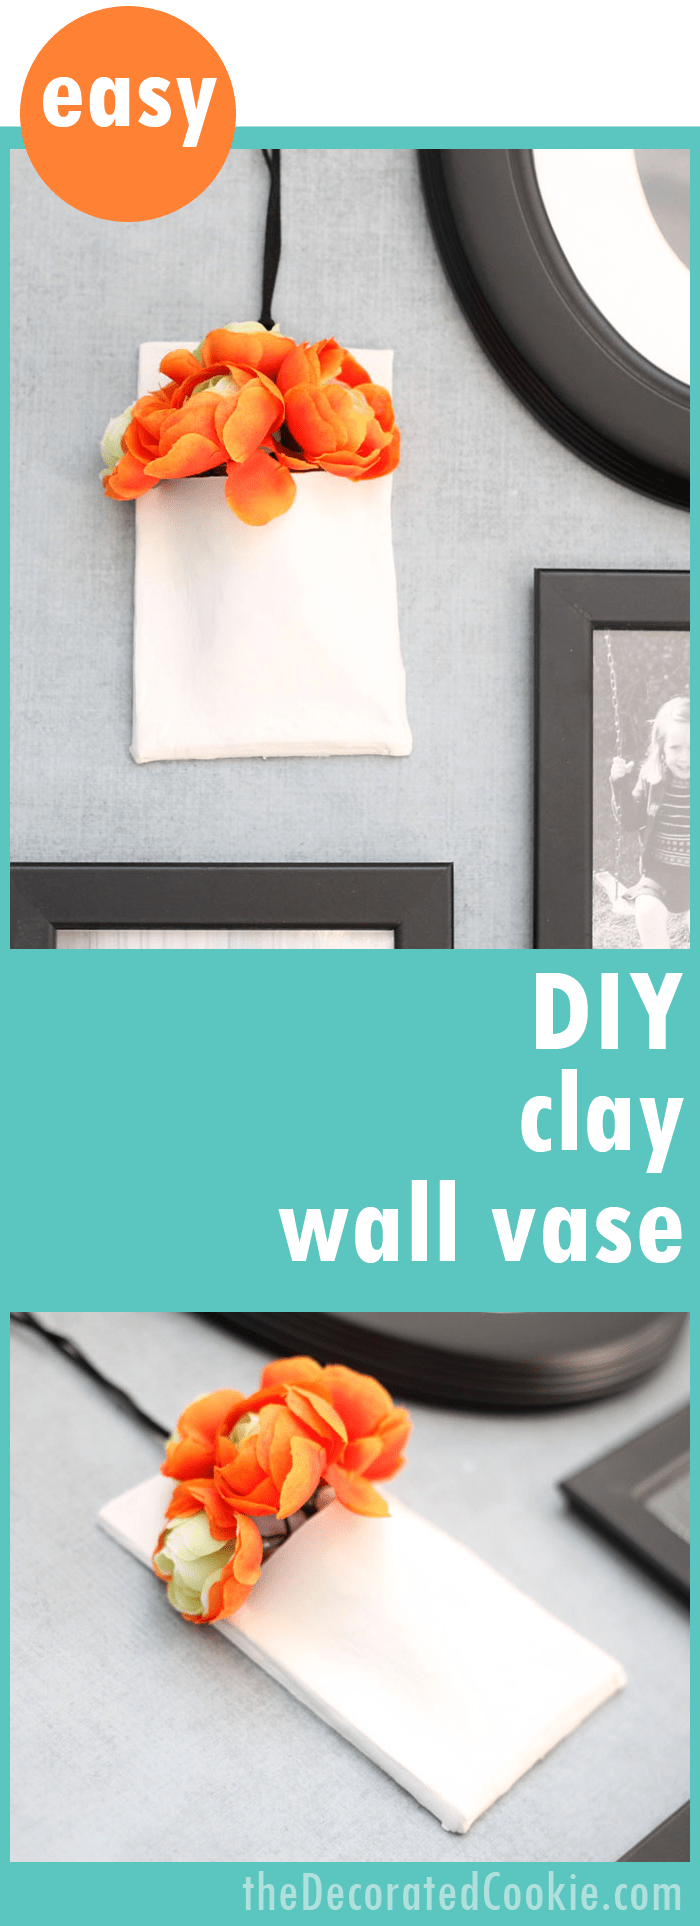 Diy Clay Wall Vase Easy To Make Creative Handmade Wall Decor